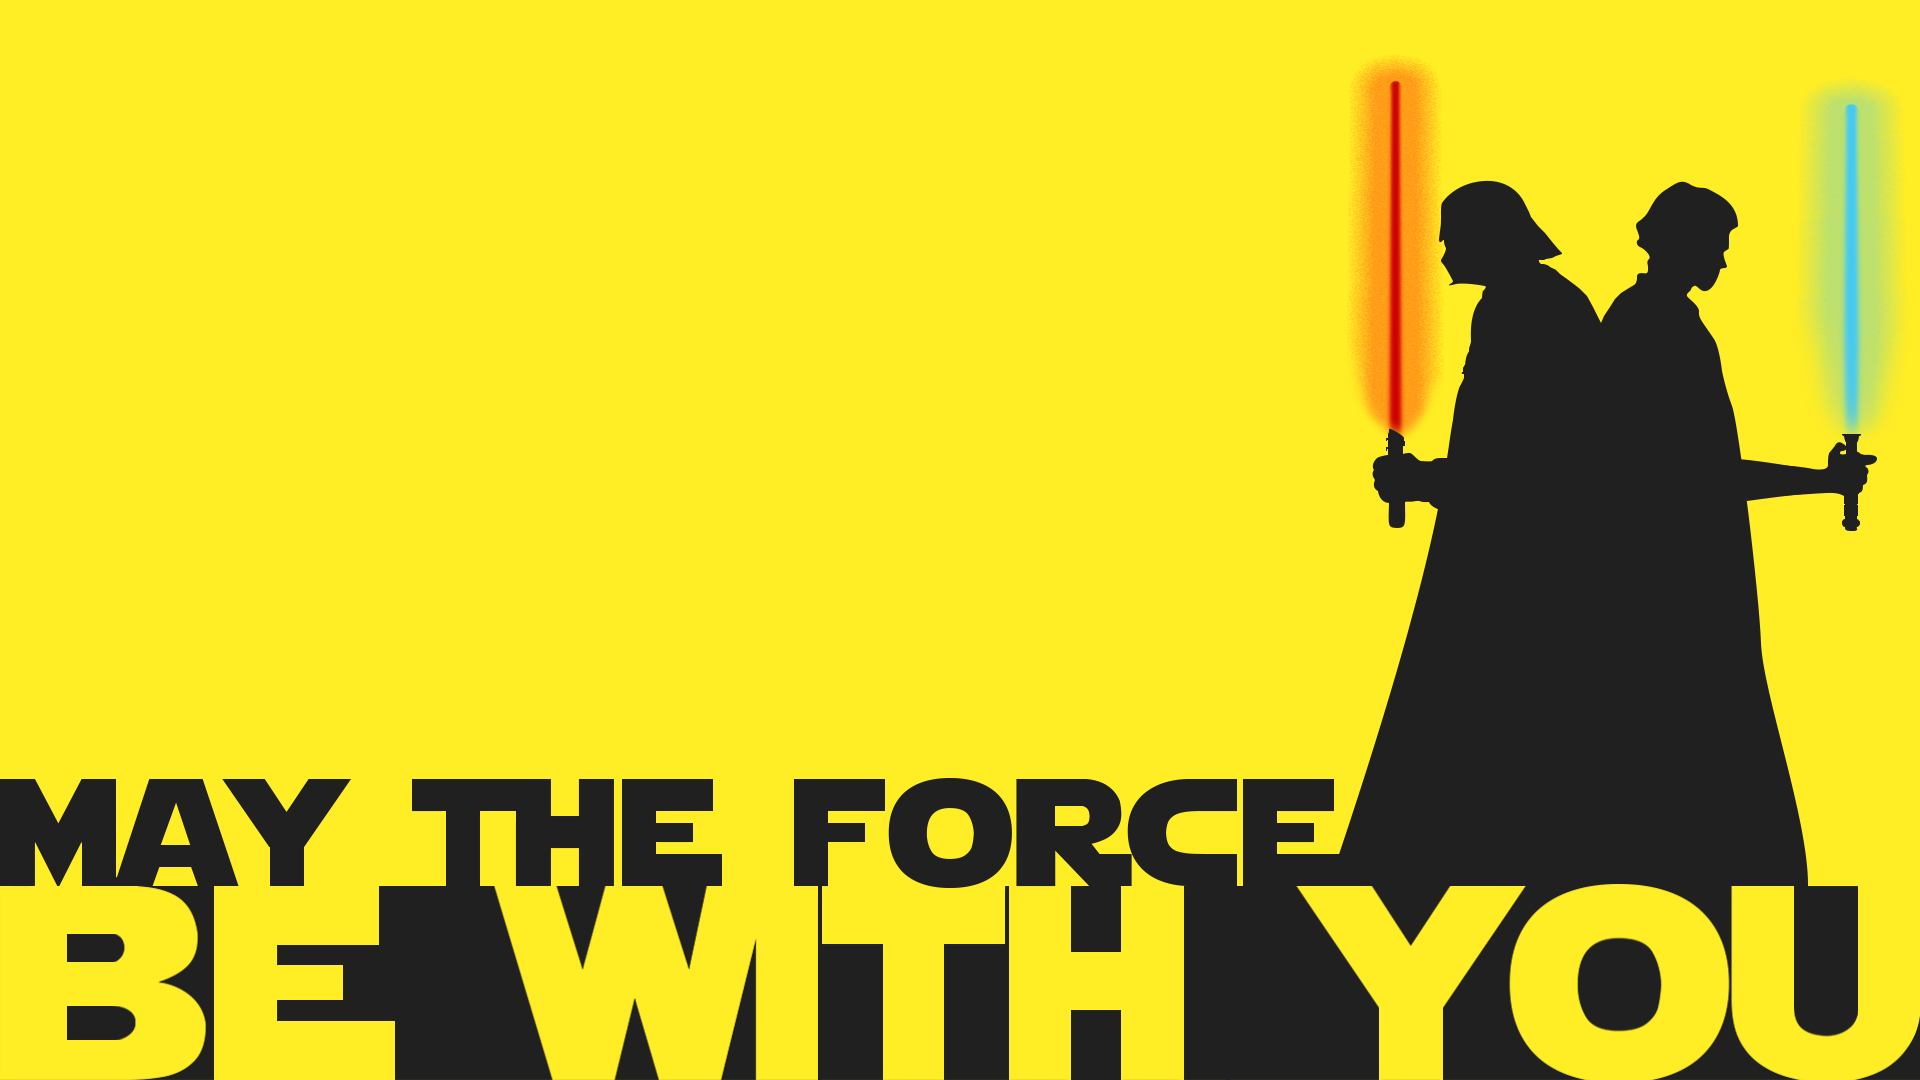 Star Wars May The Force Be With You By Mojavee On Deviantart